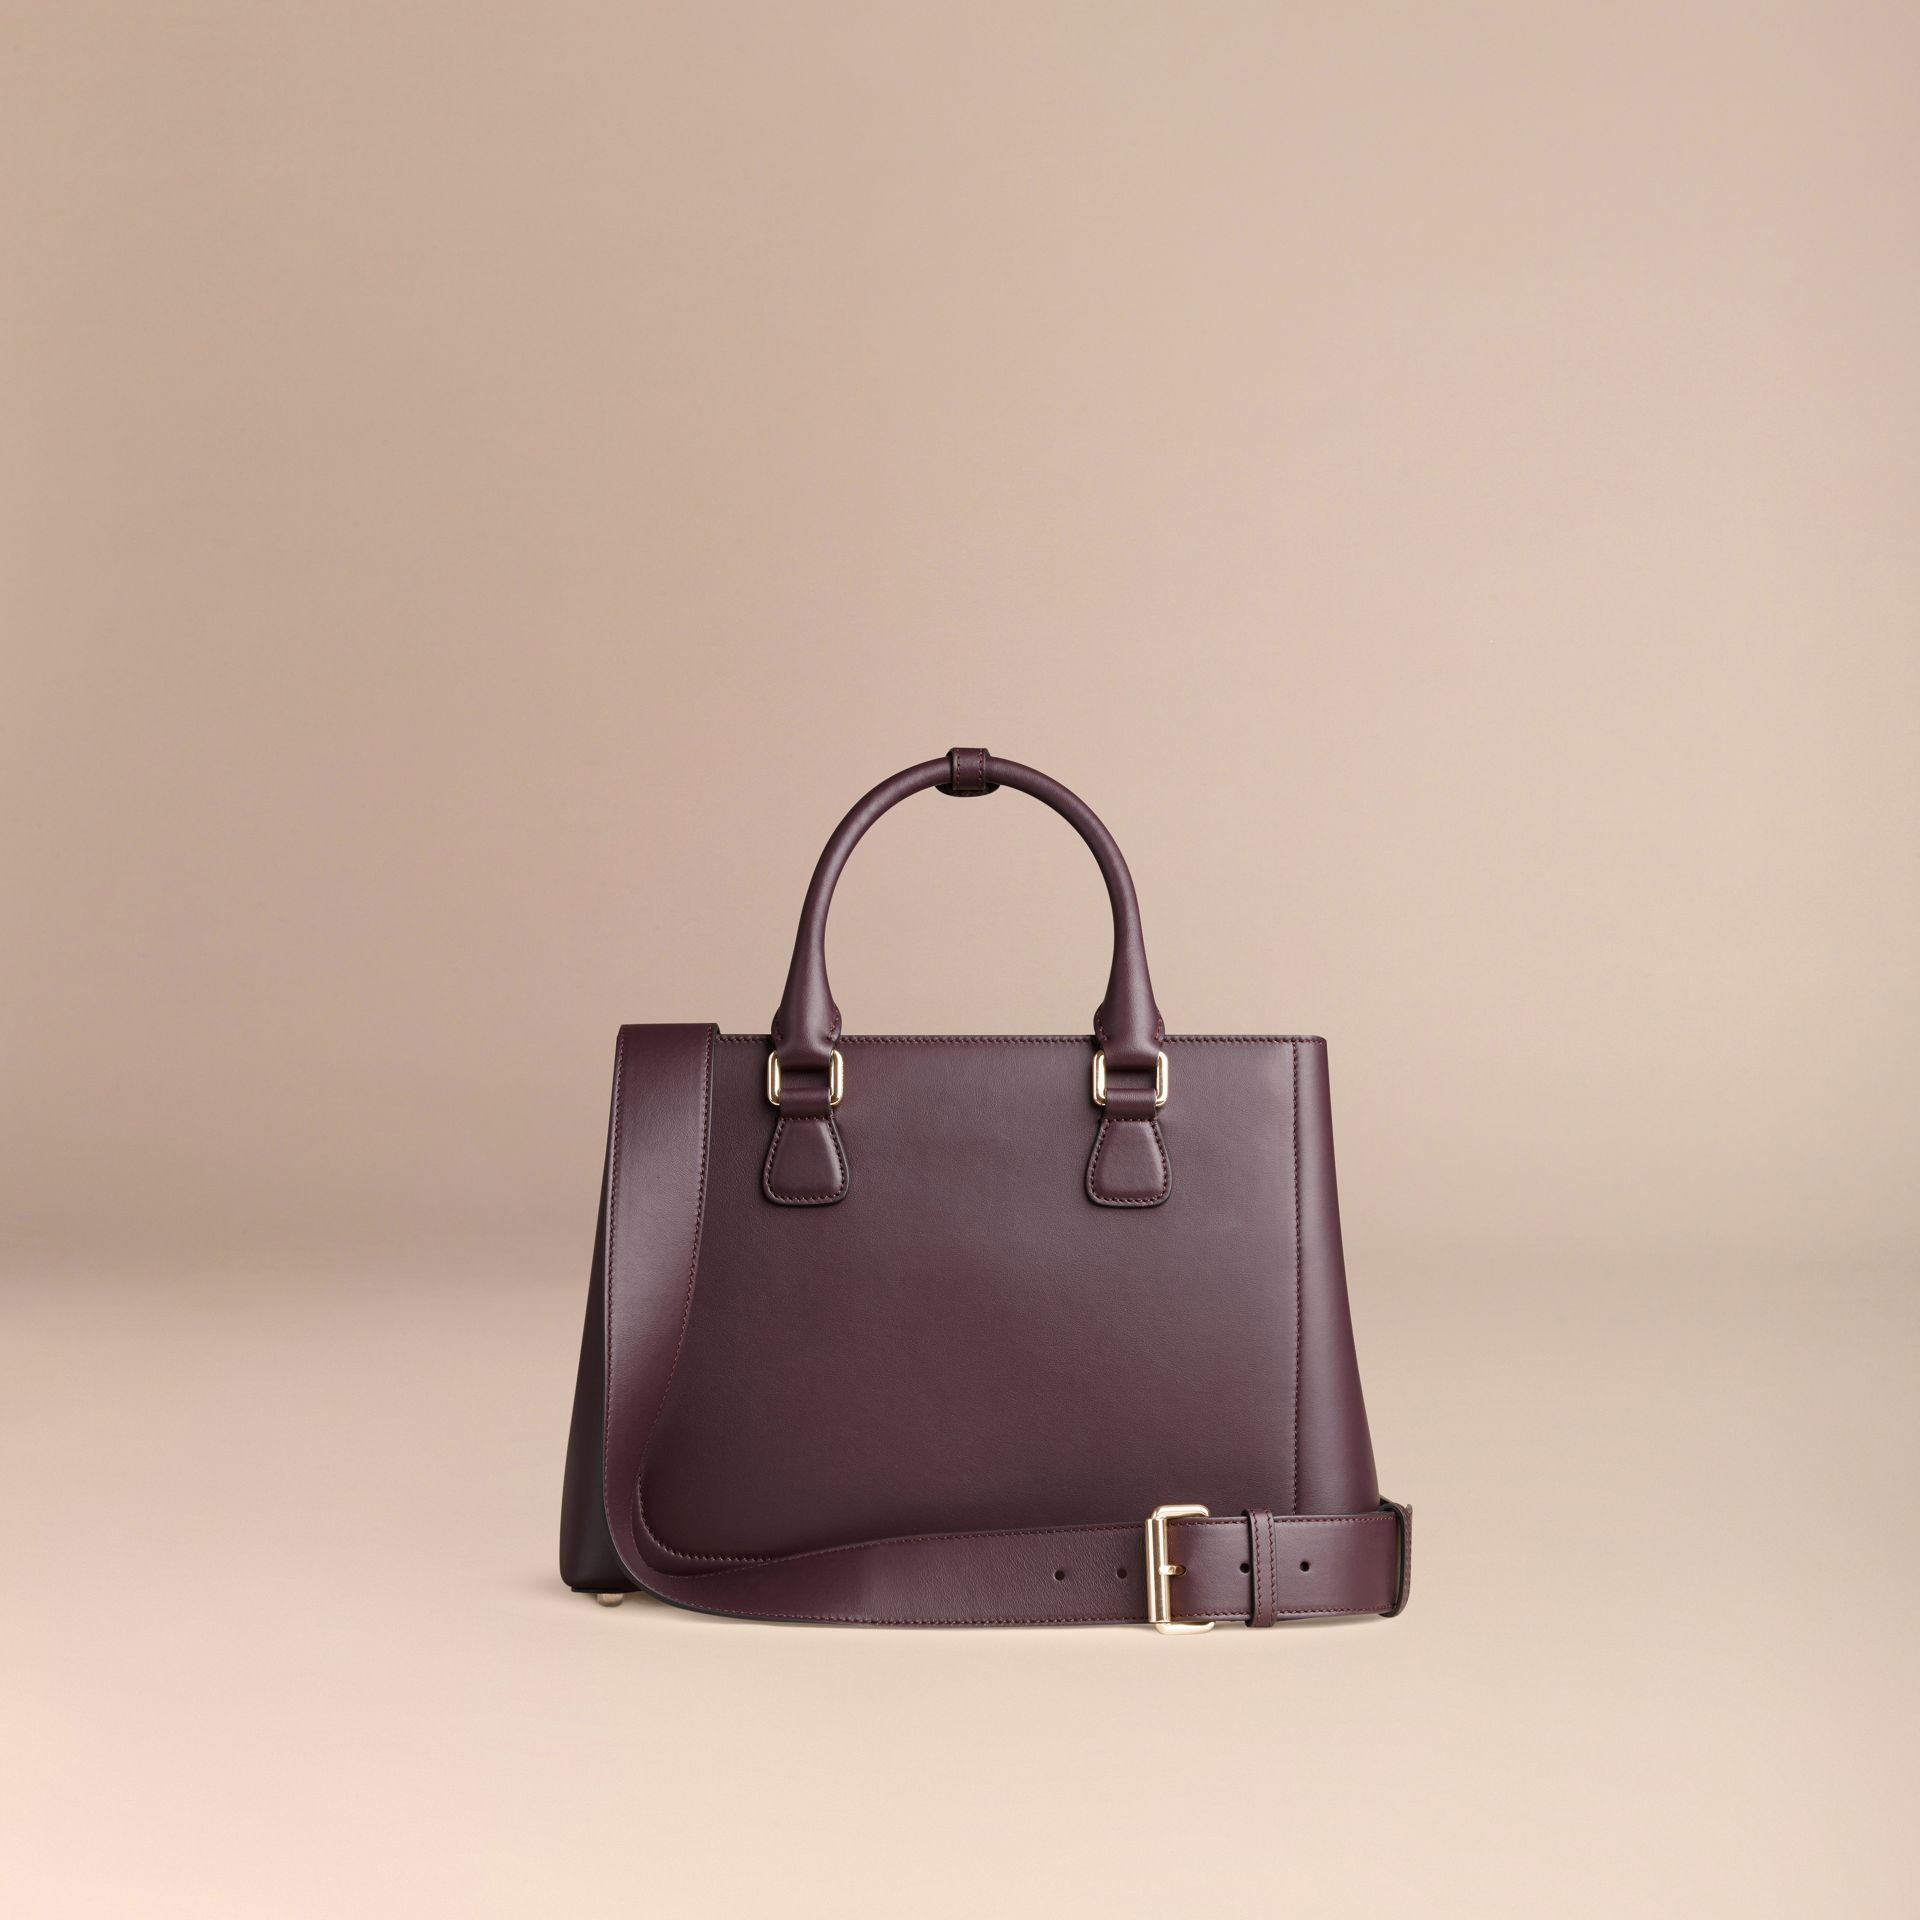 Dark amethyst The Medium Saddle Bag in Smooth Bonded Leather Dark Amethyst - gallery image 4